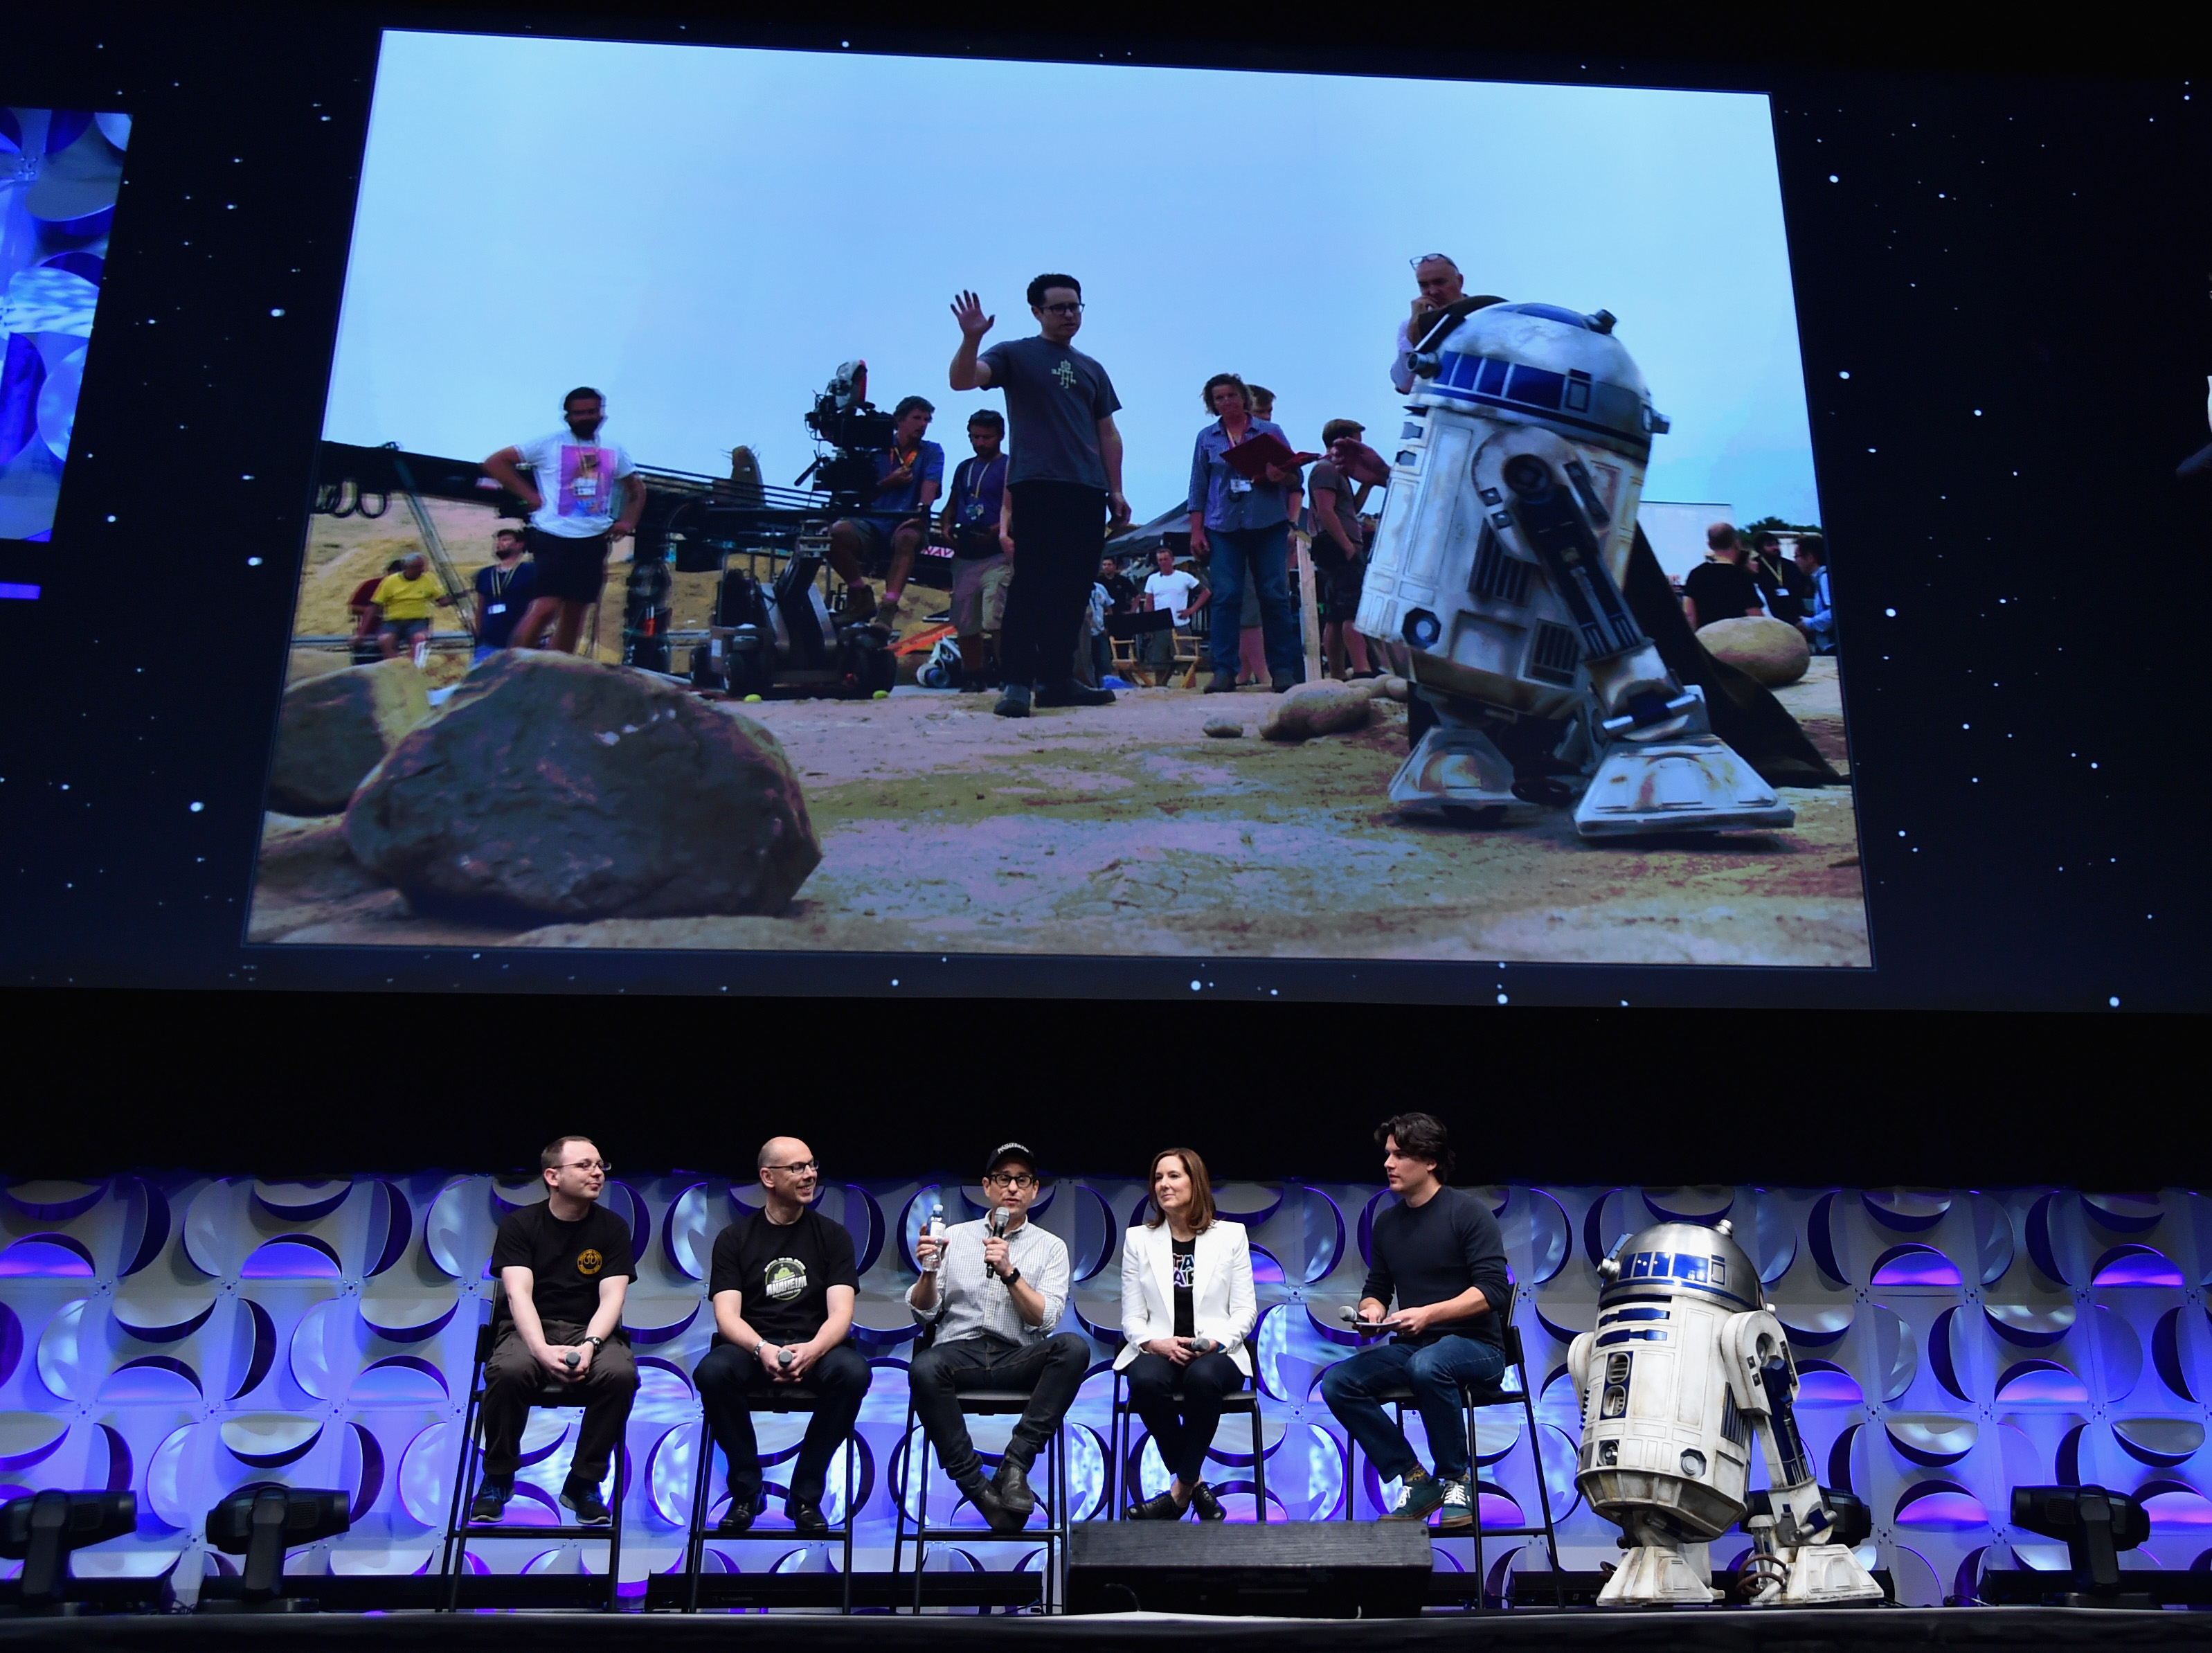 R2D2 Clip at The Star Wars Celebration